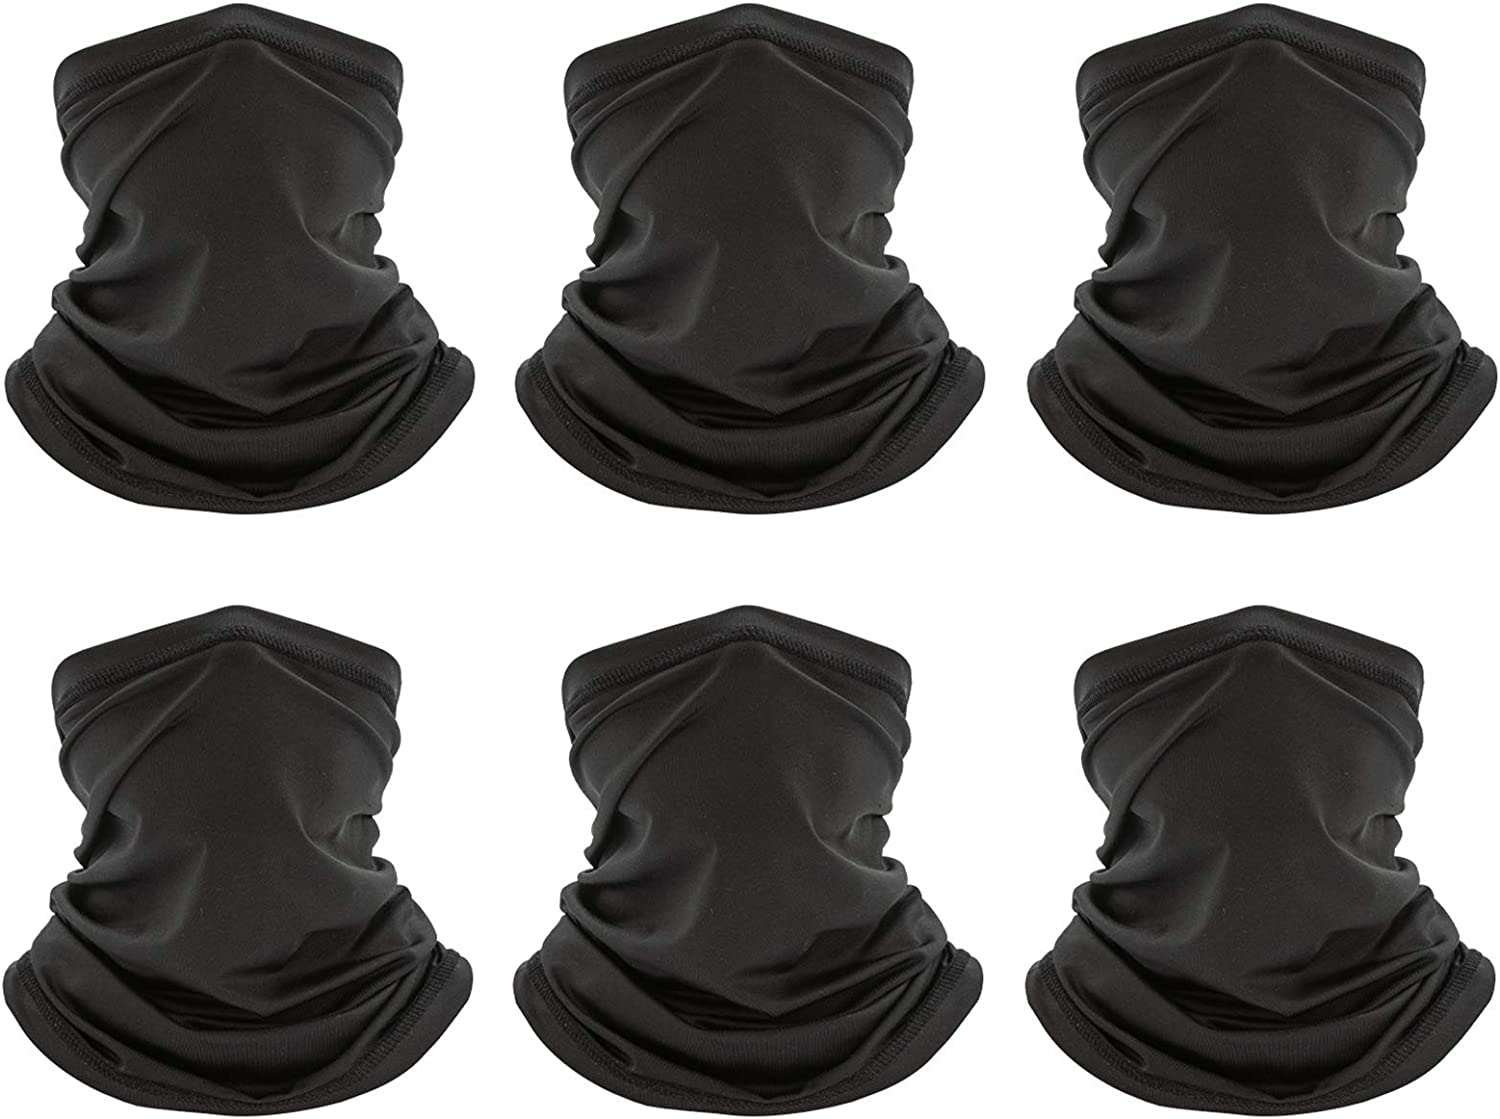 Peicees Popular 6 PCS Neck Gaiter Face SEAL limited product Men Nec Breathable Women for Mask